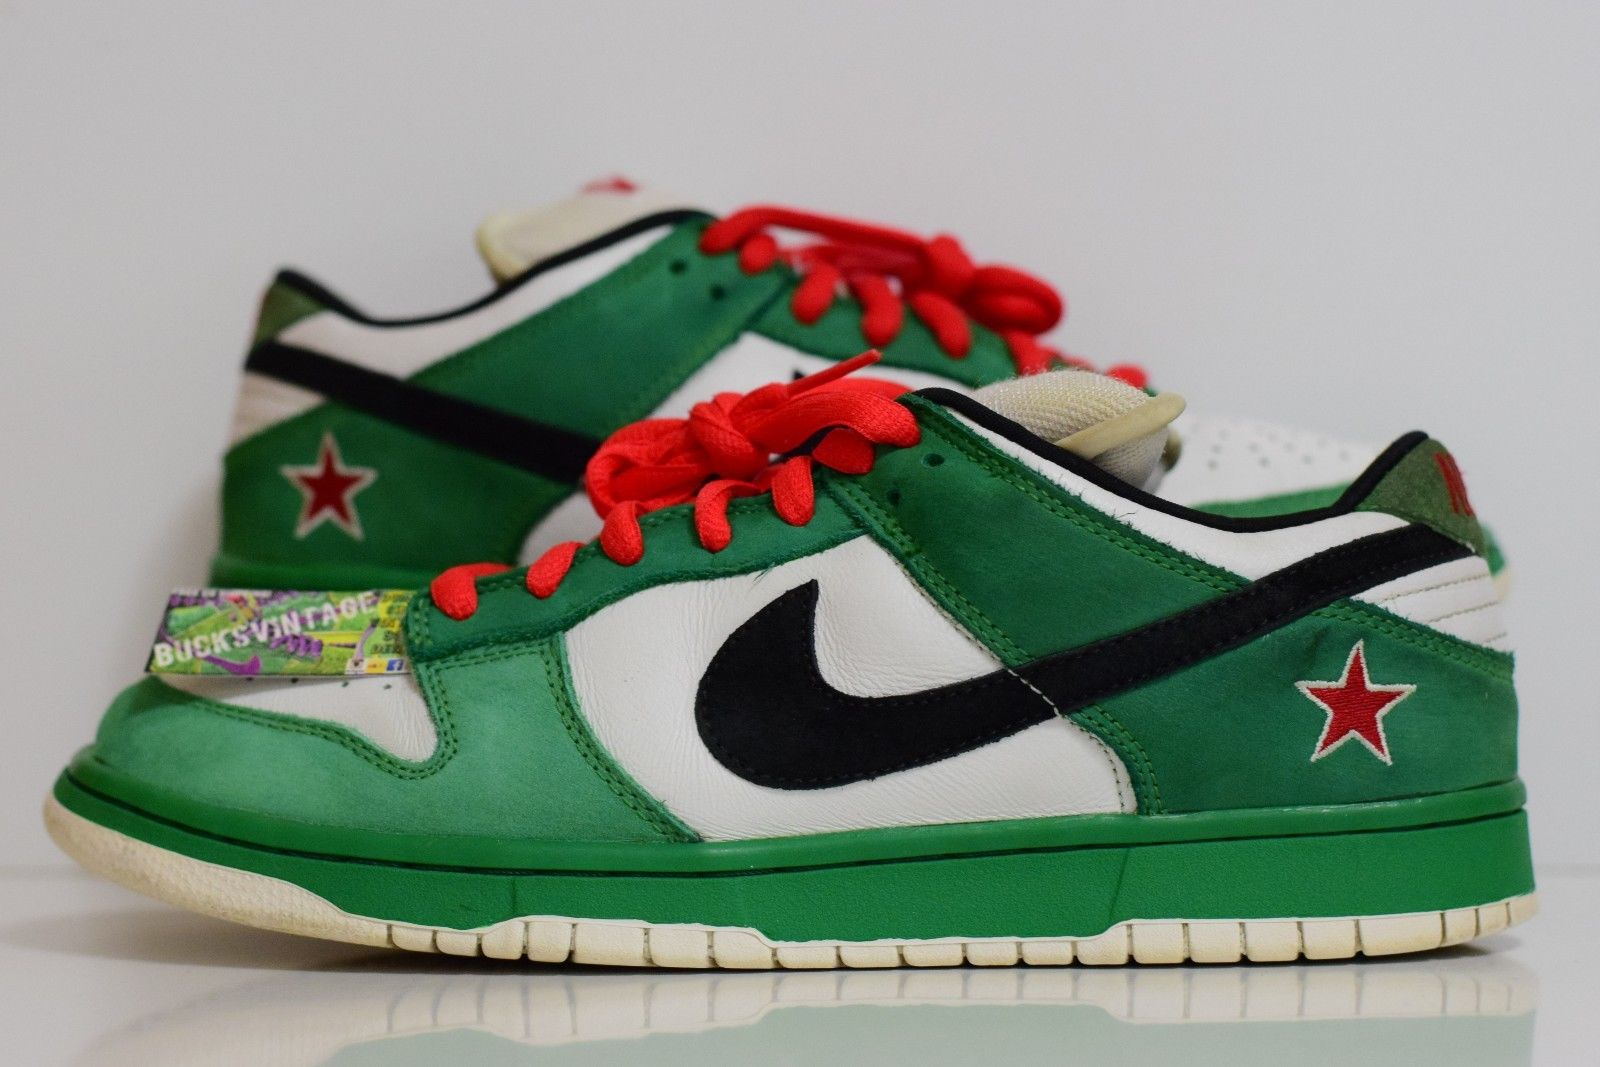 new products c88f8 0ad2a Size 11 | 2003 Nike Dunk SB Low Heineken Premium Authentic Rare 304292-302  from BucksVintage